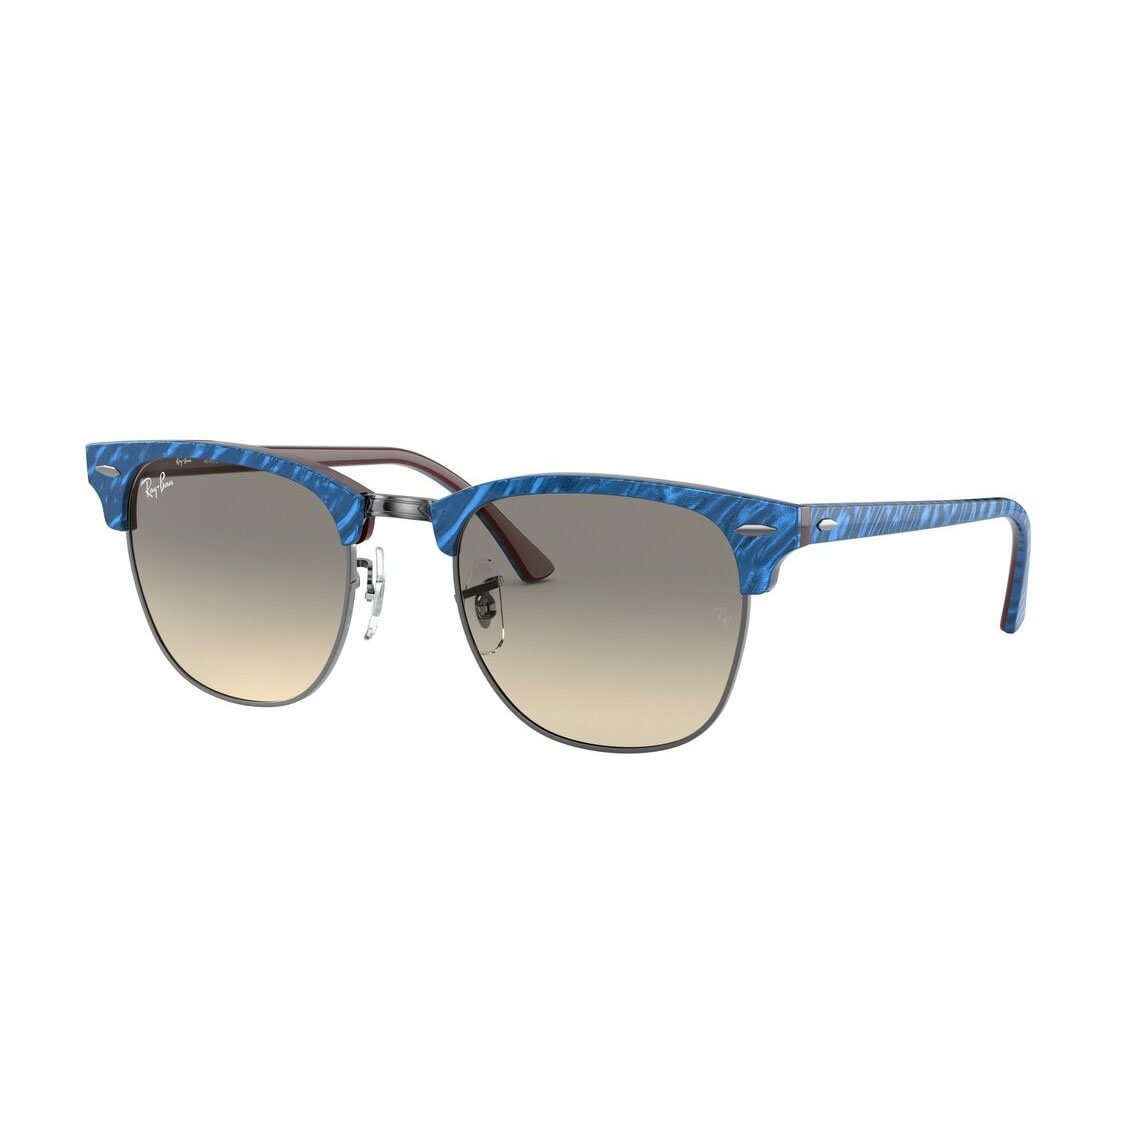 Ray-Ban Clubmaster Marble RB3016 131032 49